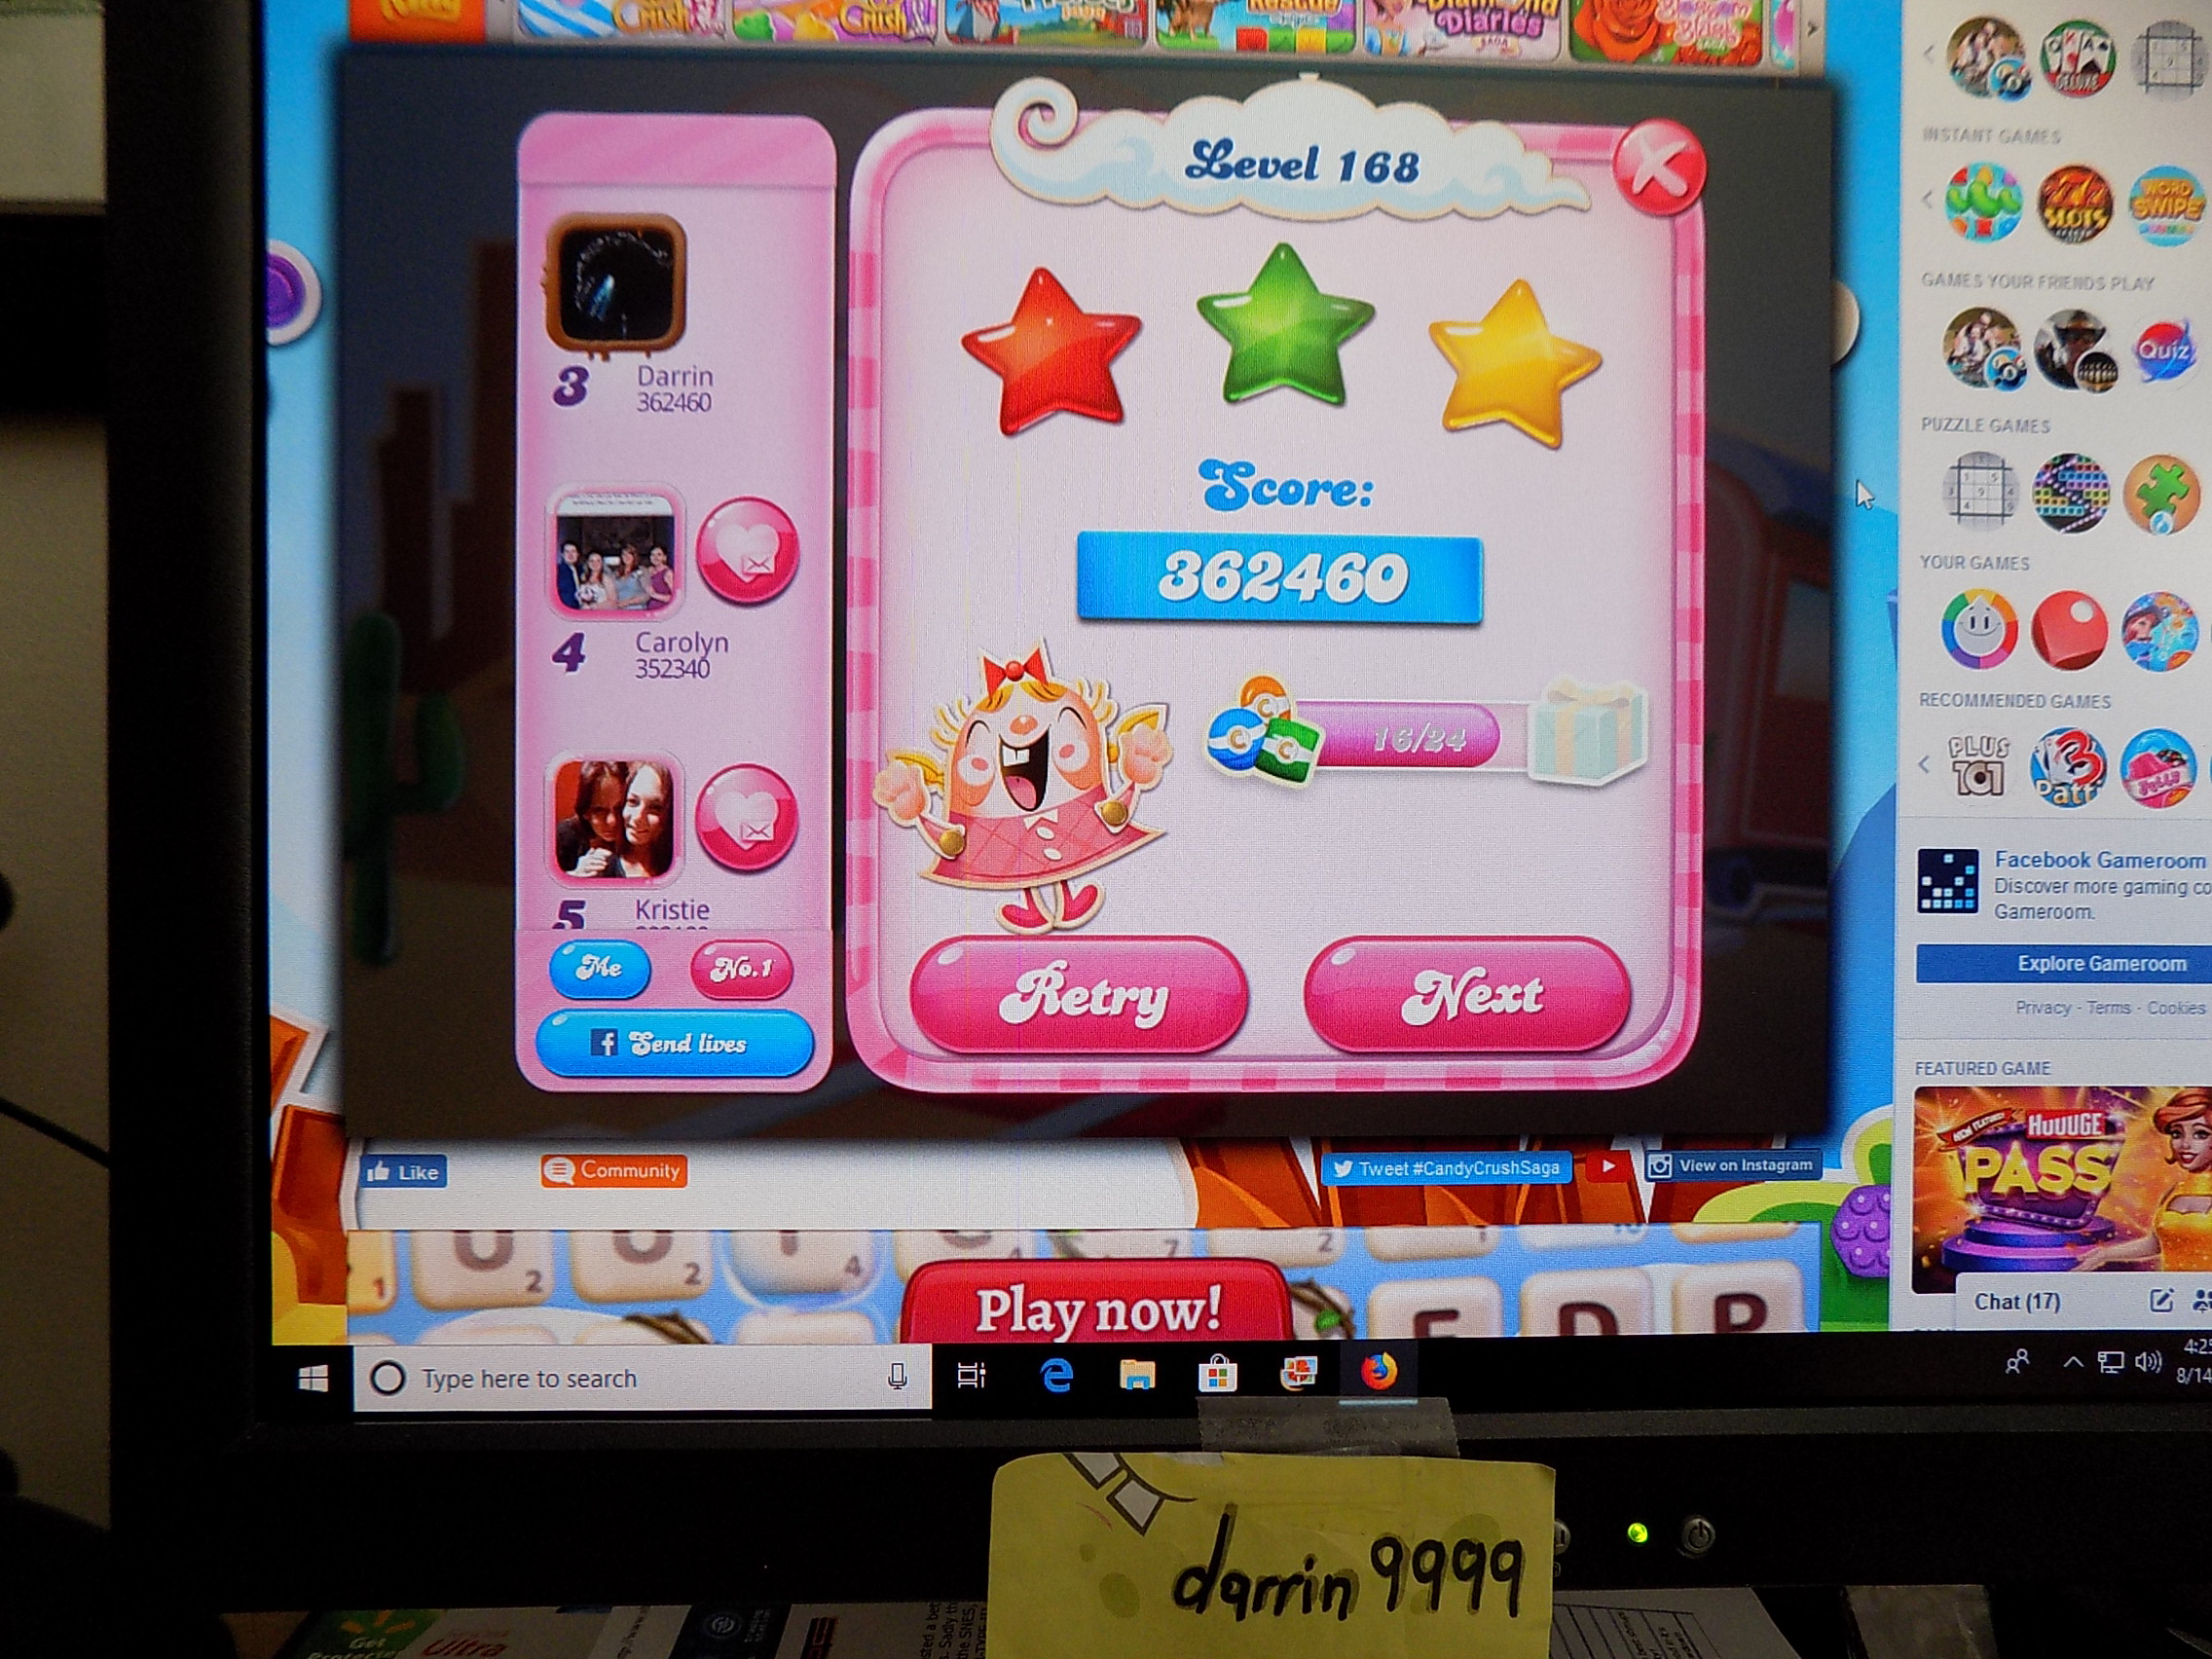 darrin9999: Candy Crush Saga: Level 168 (Web) 362,460 points on 2019-09-24 16:10:55